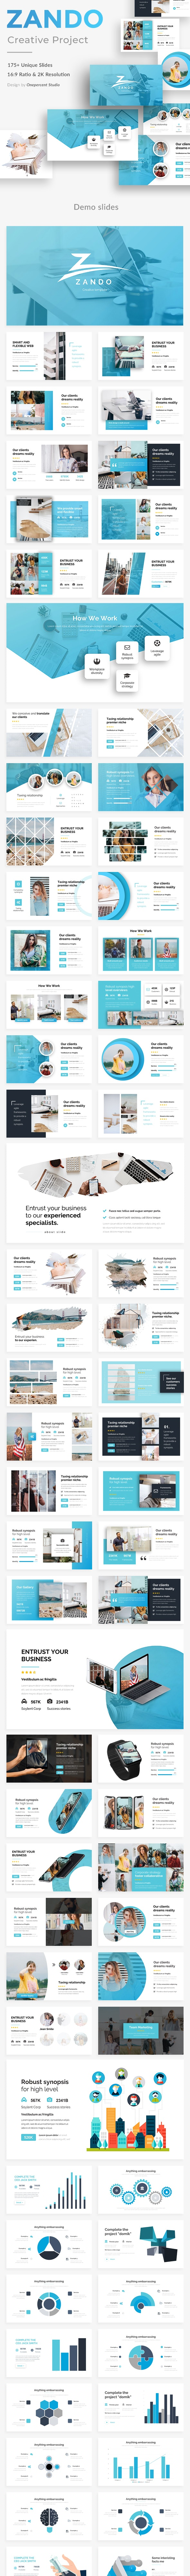 Zando Creative Google Slide Template - Google Slides Presentation Templates